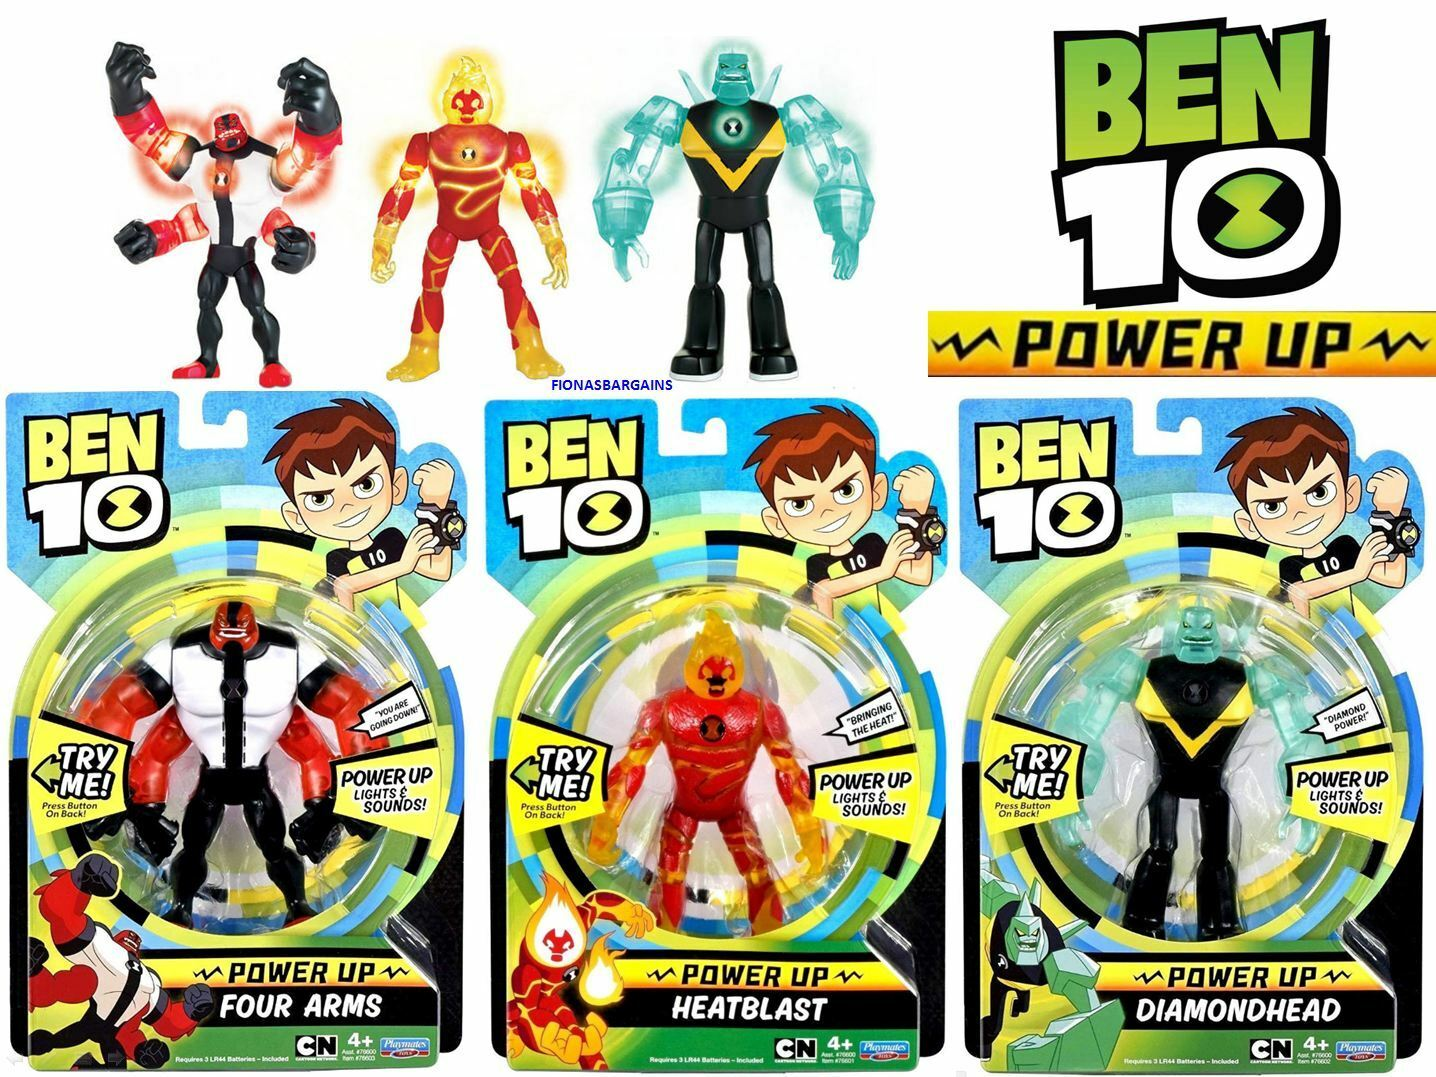 Ben 10 Power Up Deluxe Figures Choose Heatblast Diamondhead Four Arms Or All 3